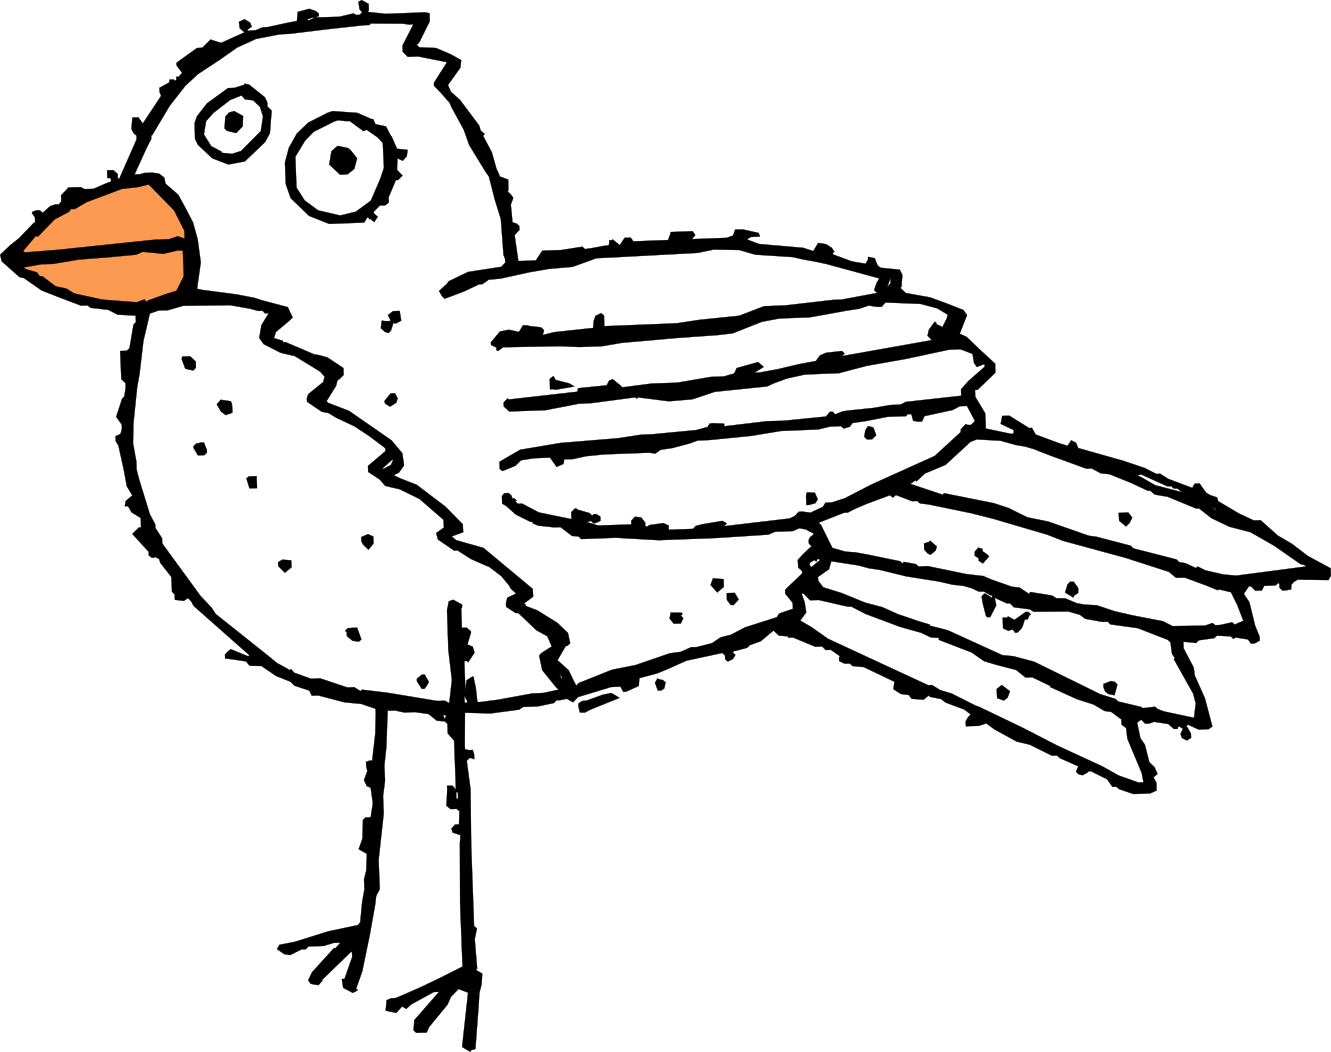 Cartoon Bird 3 Black White Line Art Scalable Vector